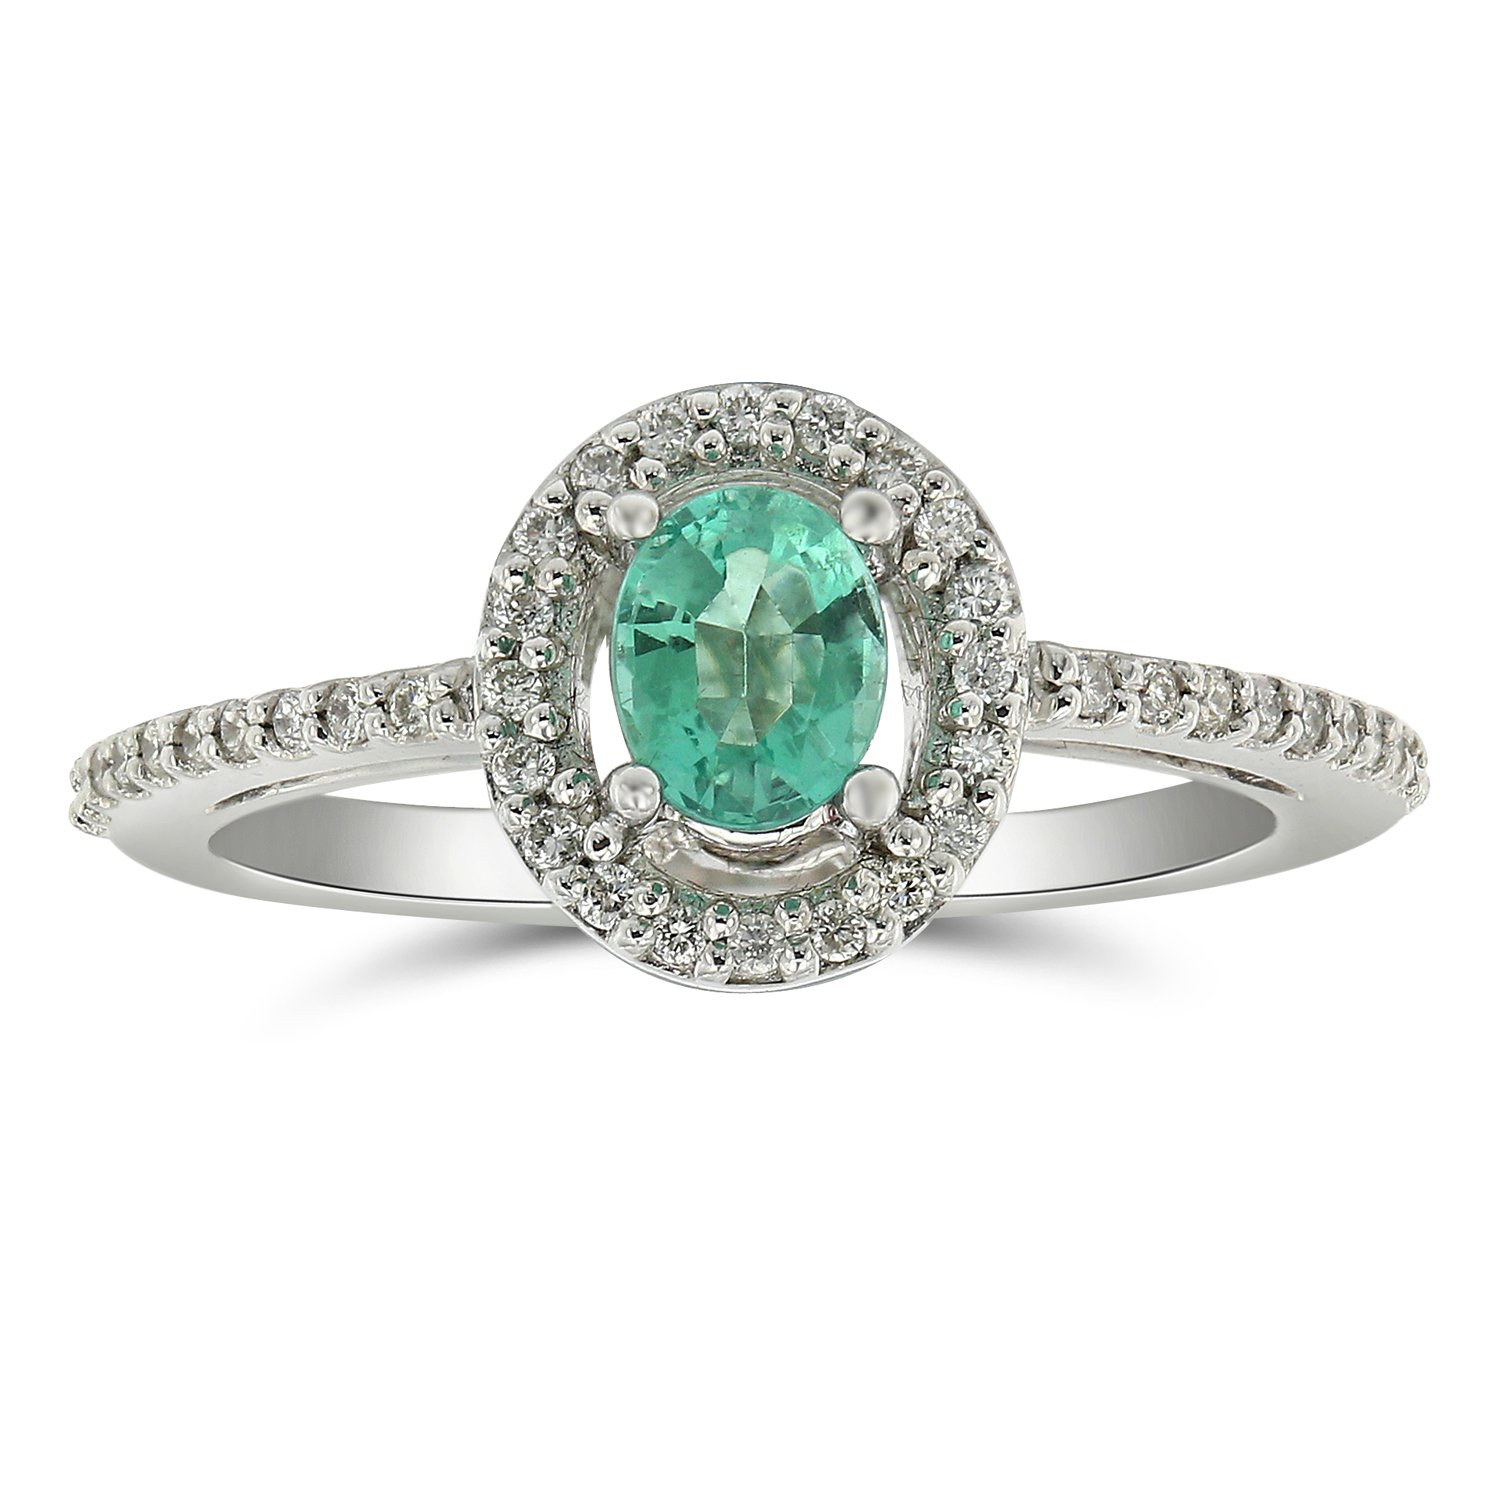 Almost all Sold Out !!,Jewel Ivy 14K White Gold Ring with Emerald and Diamond, Royal, Luxury Look, Best Gift For Friend, Girlfriend, Wife, Size- US-5.5